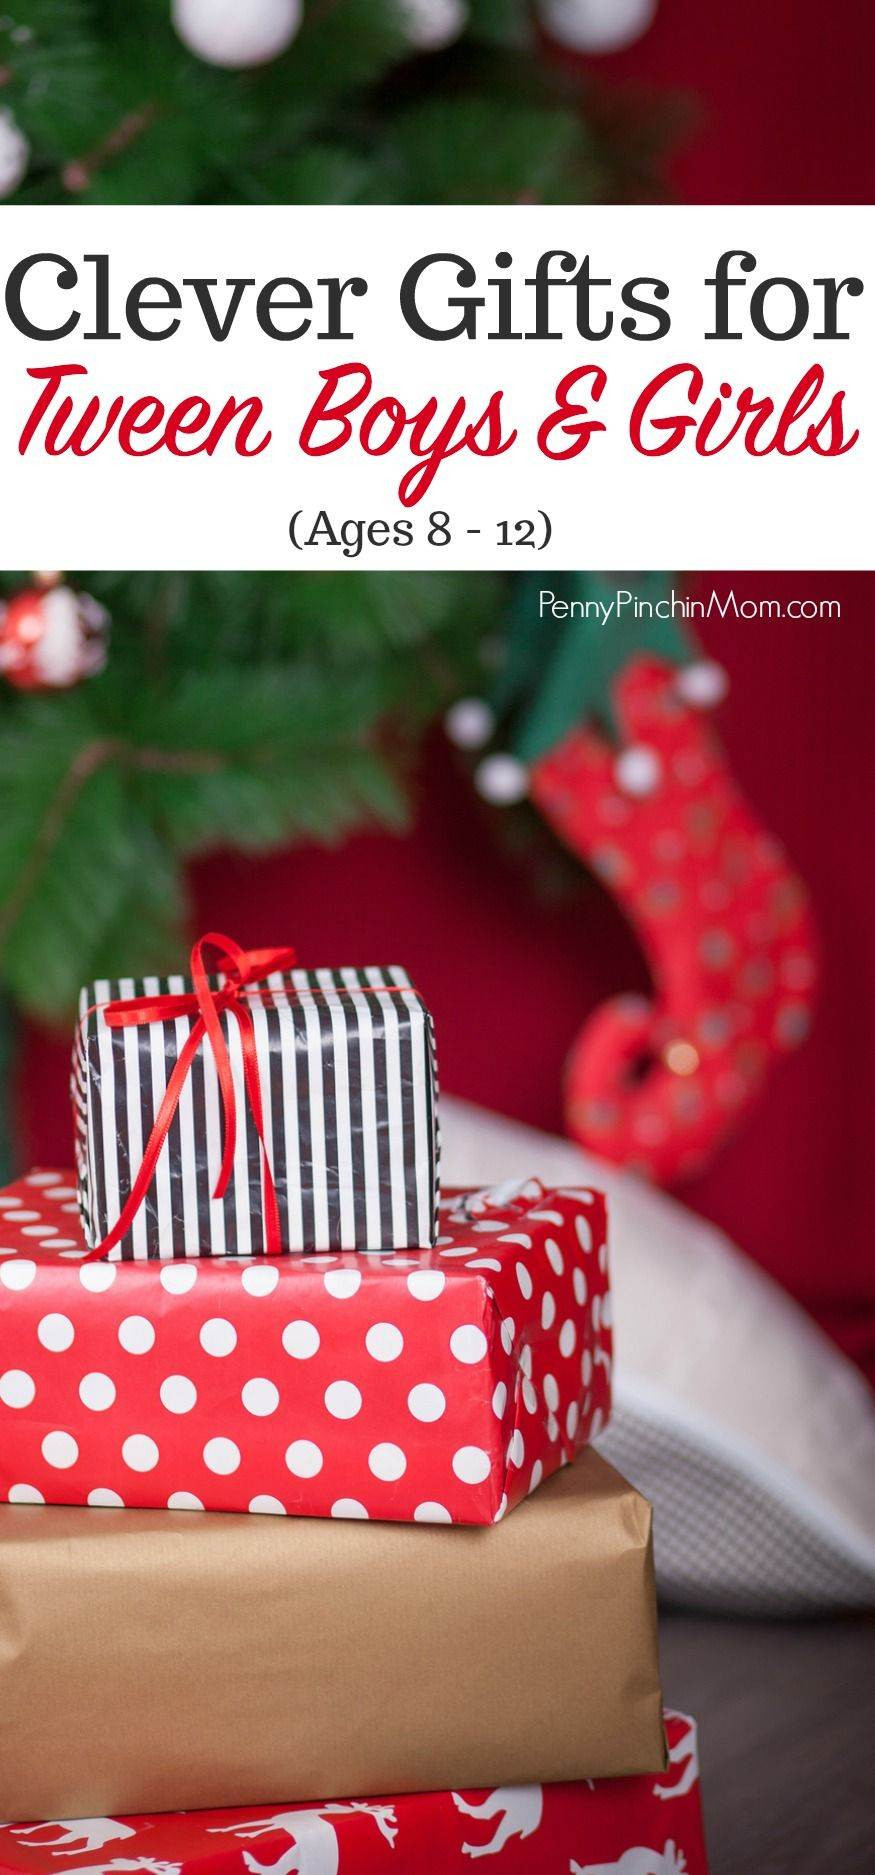 Best ideas about Girlfriend Gift Ideas Christmas . Save or Pin Christmas Gift Ideas for Girlfriend Best What to A 7 Now.